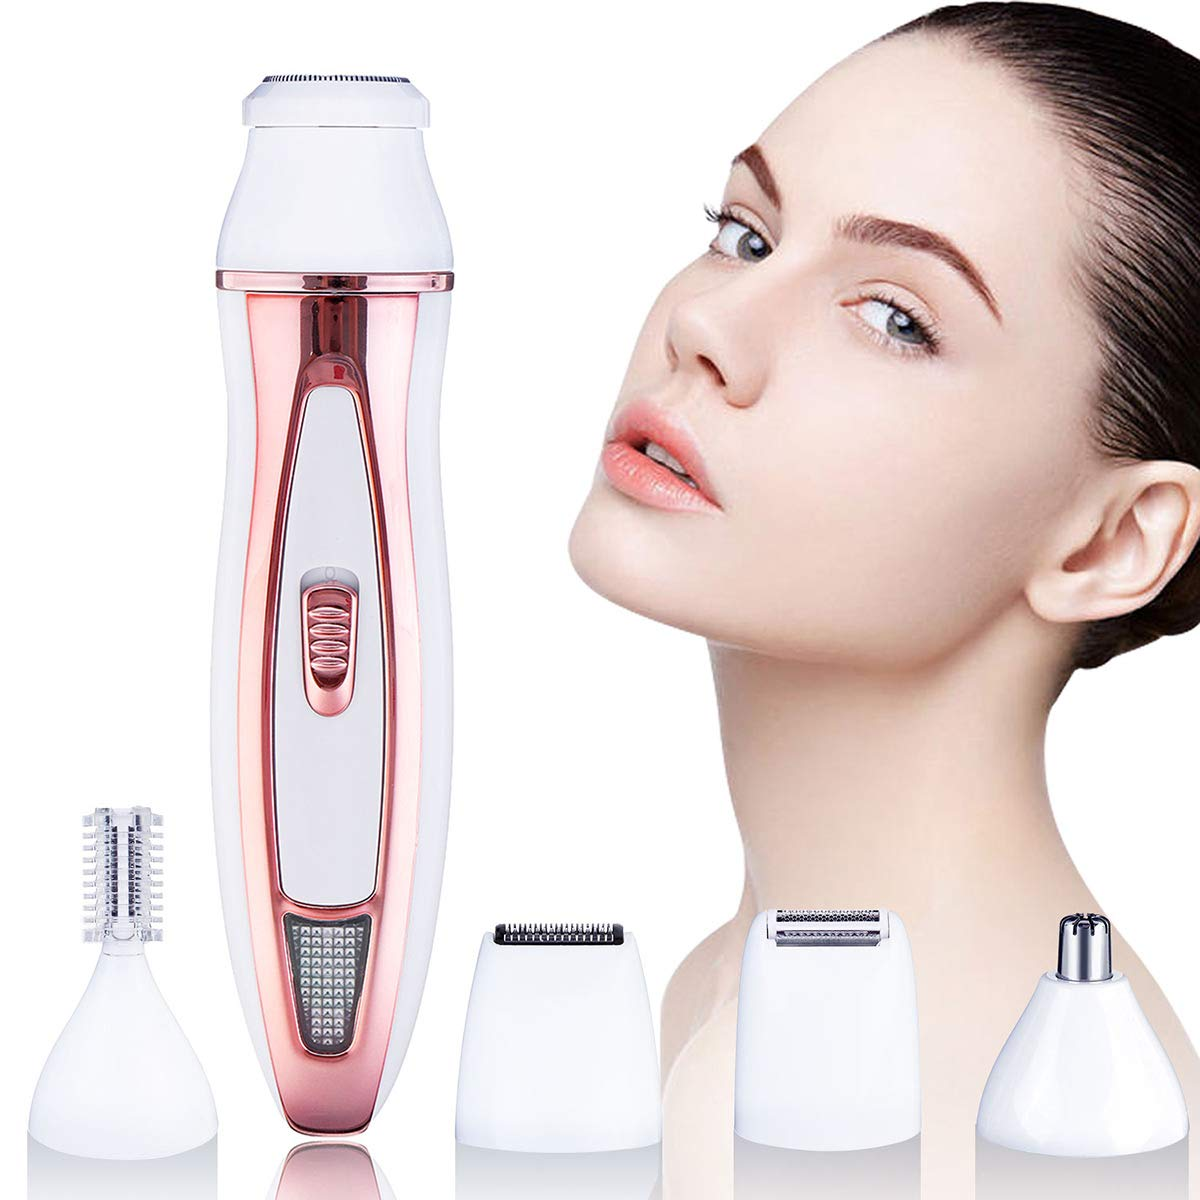 Facial Hair Removal for Women, HOCOSY Rechargeable Women Face Hair Remover 5 in 1 – Facial Shaver, Eyebrow Trimmer, Nose Trimmer, Body Shaver, Beard Trimmer – Facial Hair Trimmer for Women